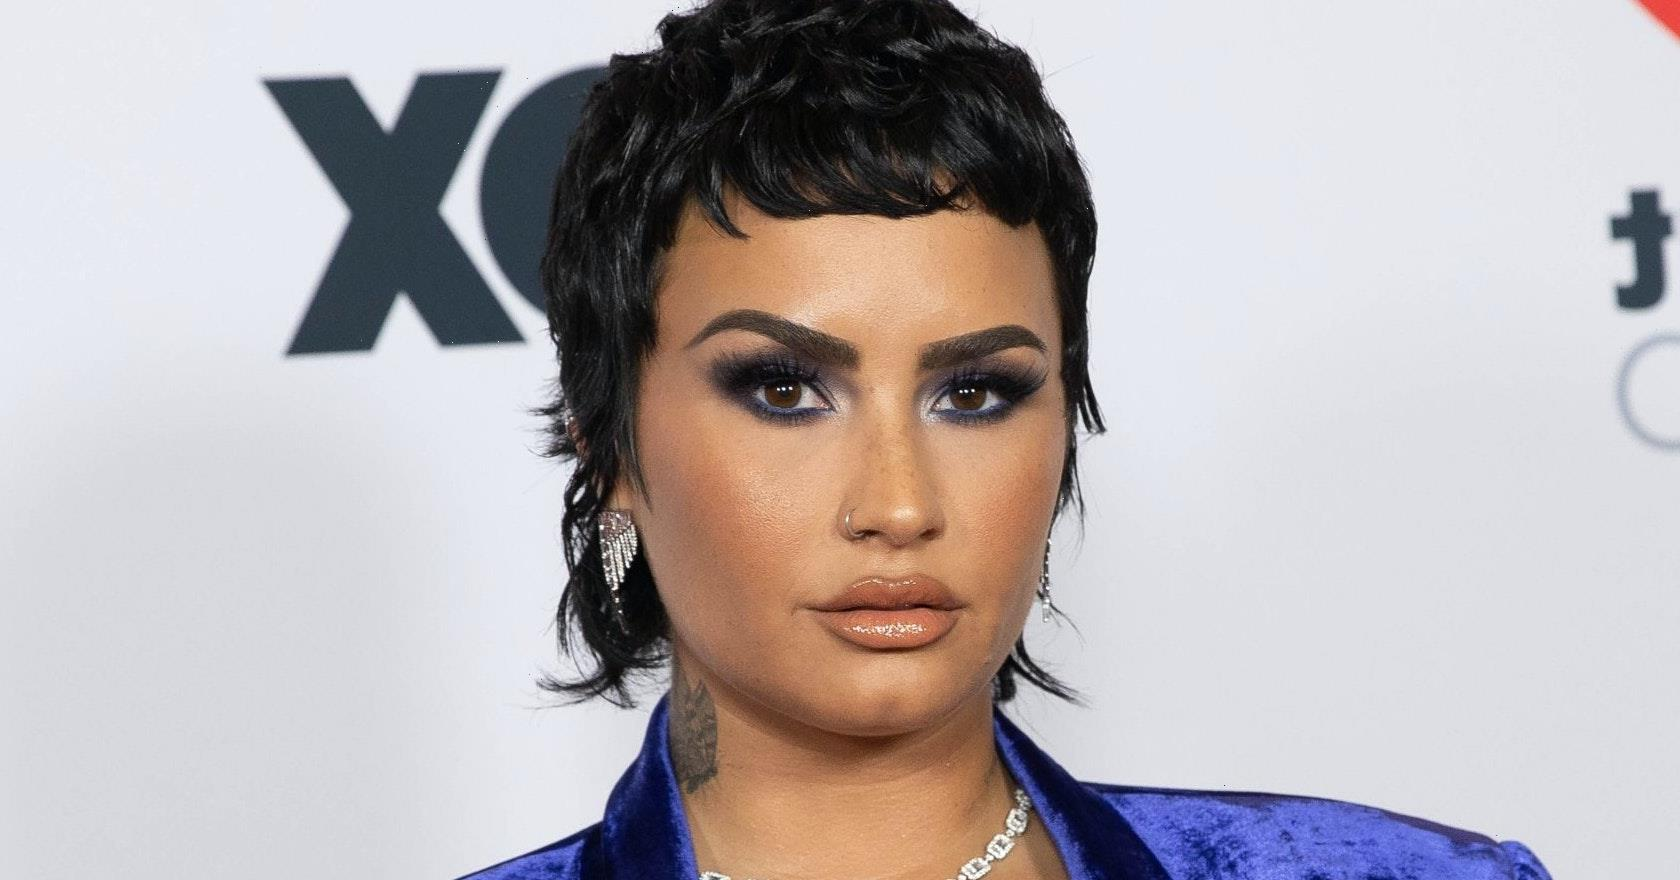 Demi Lovato's eye-opening docuseries makes some seriously wild claims about UFOs